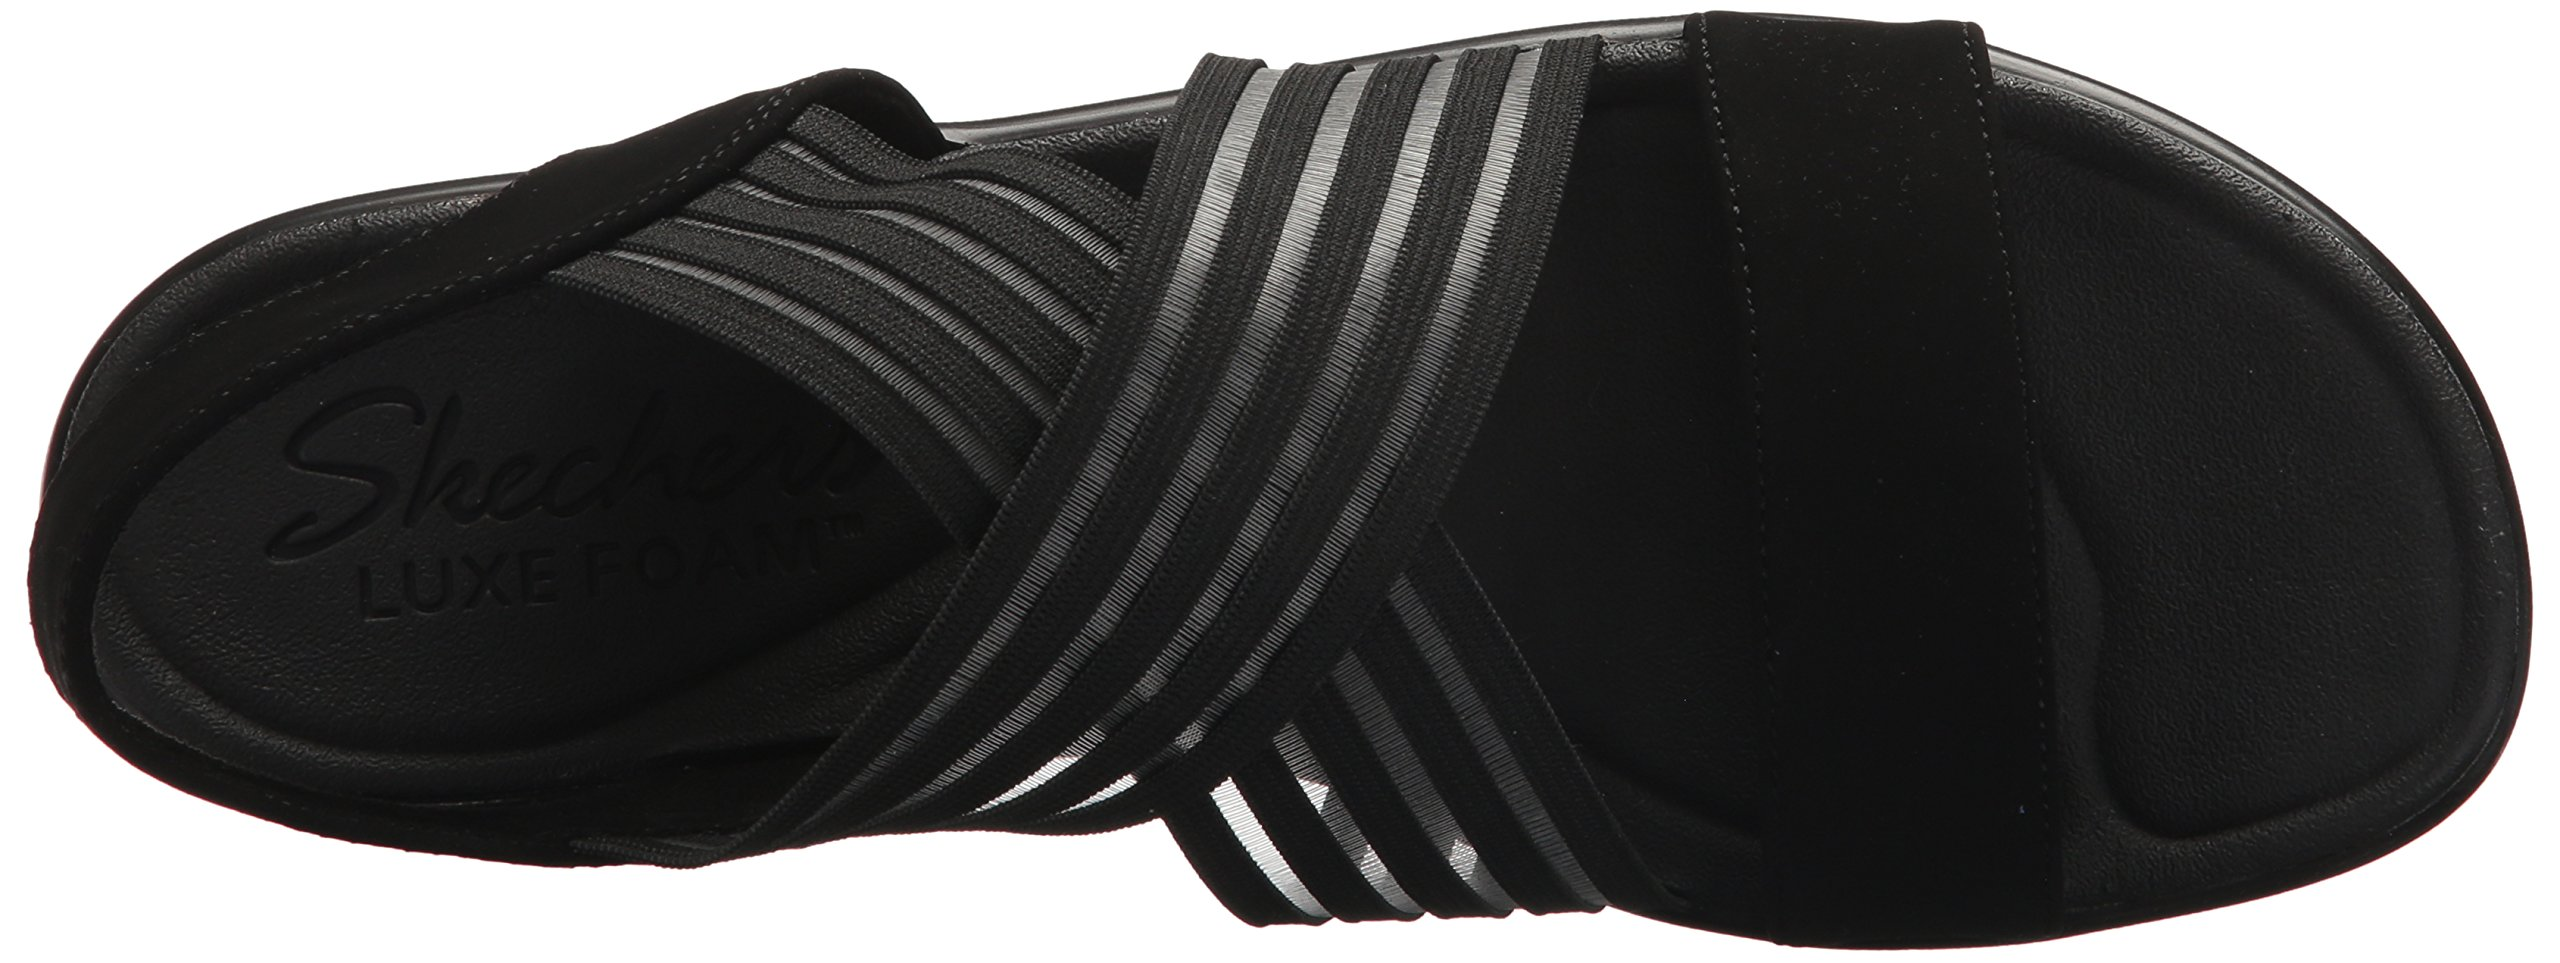 f3d615b4f5d Skechers Women s Bumblers-Stop and Stare Sandal   Sandals   Clothing ...